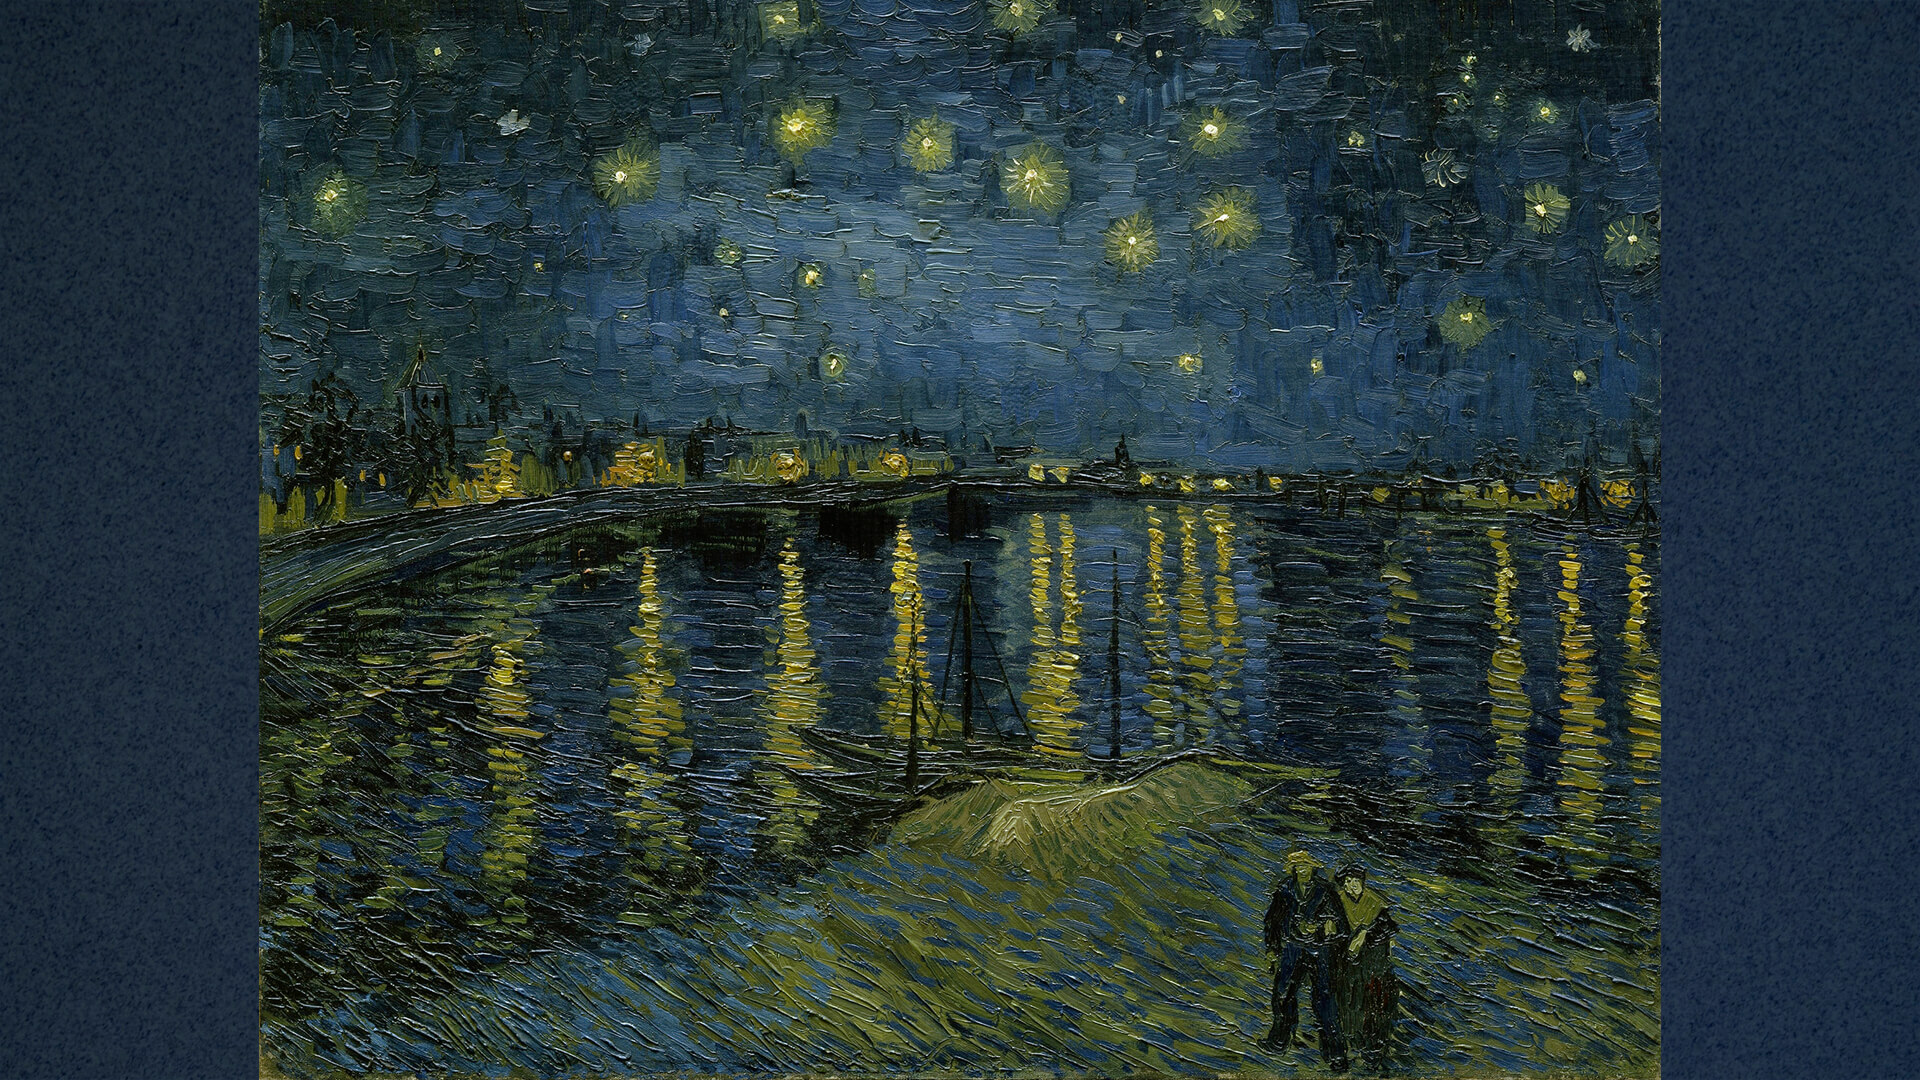 Vincent van Gogh-Starry Night Over the Rhone_1920x1080